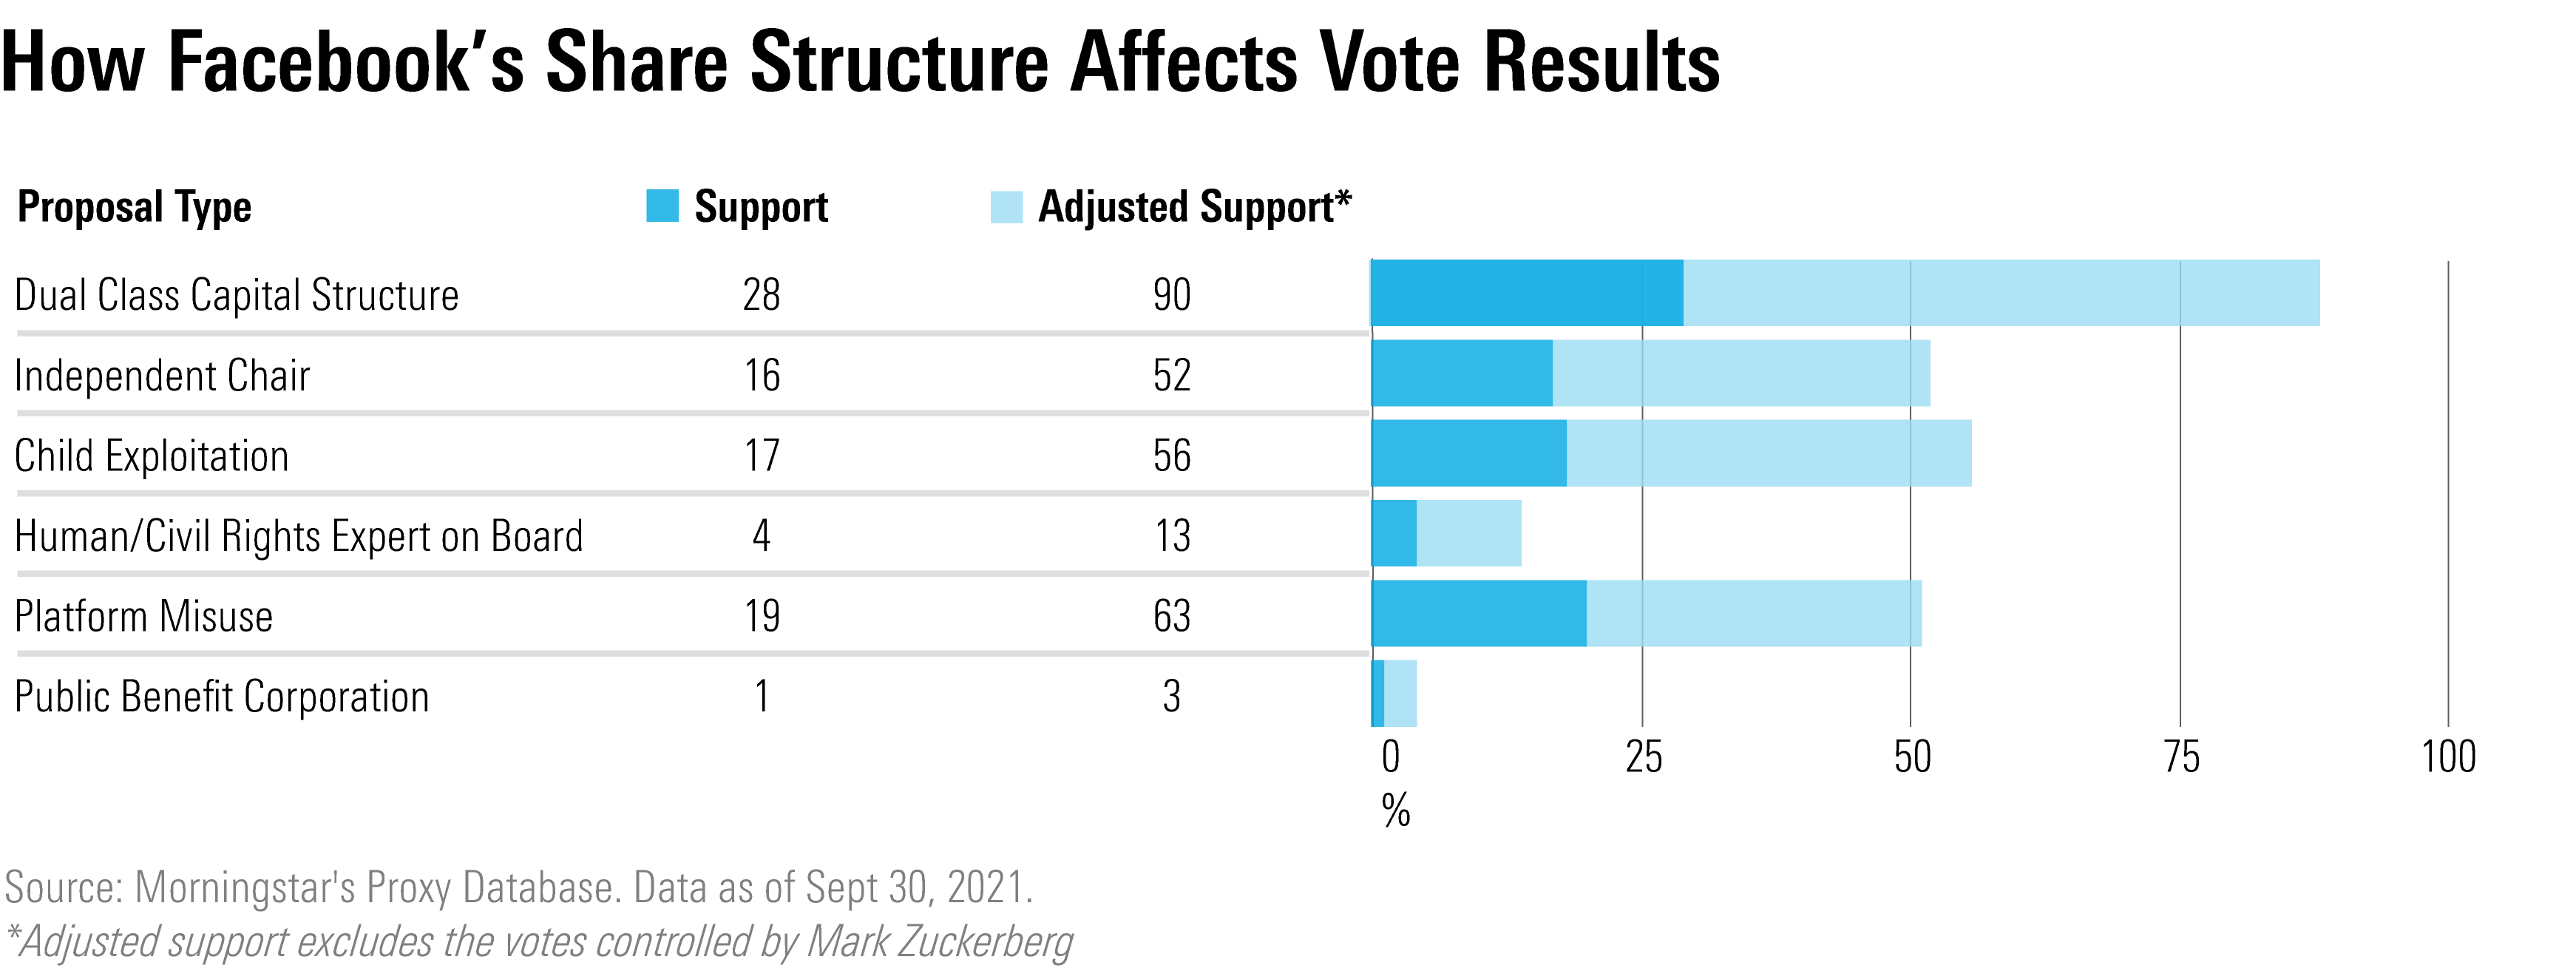 How Facebook's Share Structure Affects Vote Results